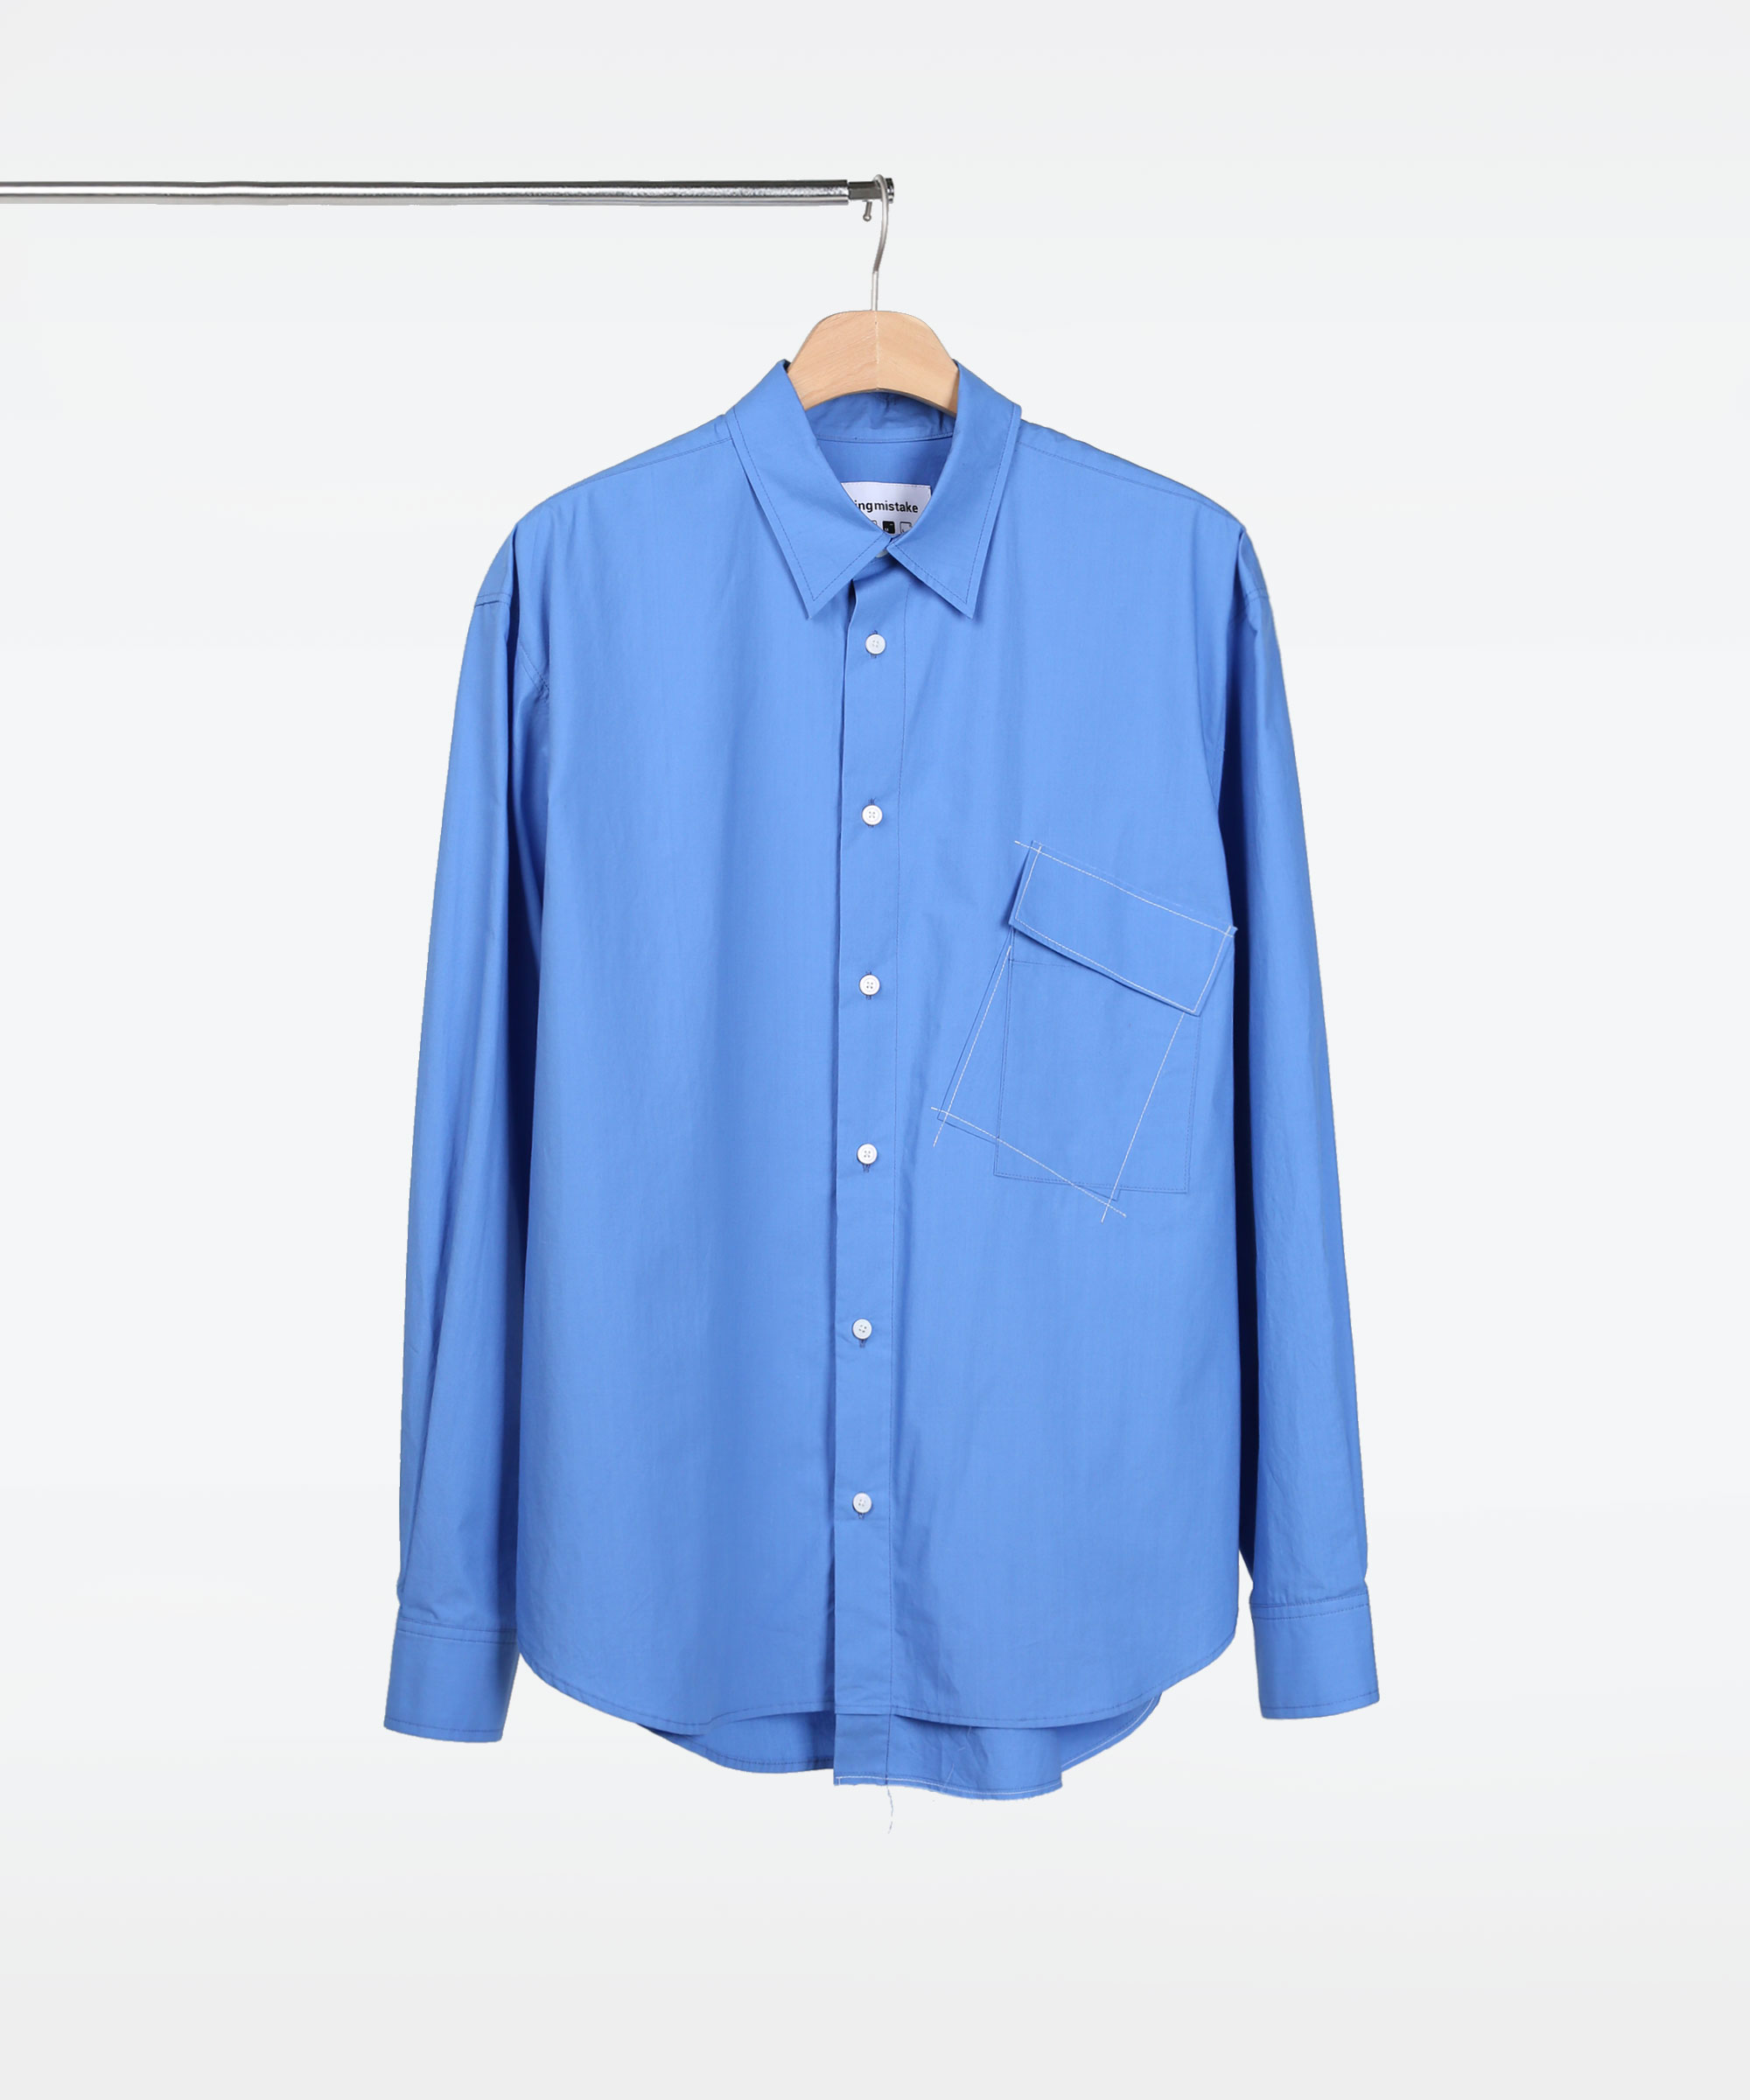 ASYMMETRIC POCKET SHIRTS BLUE